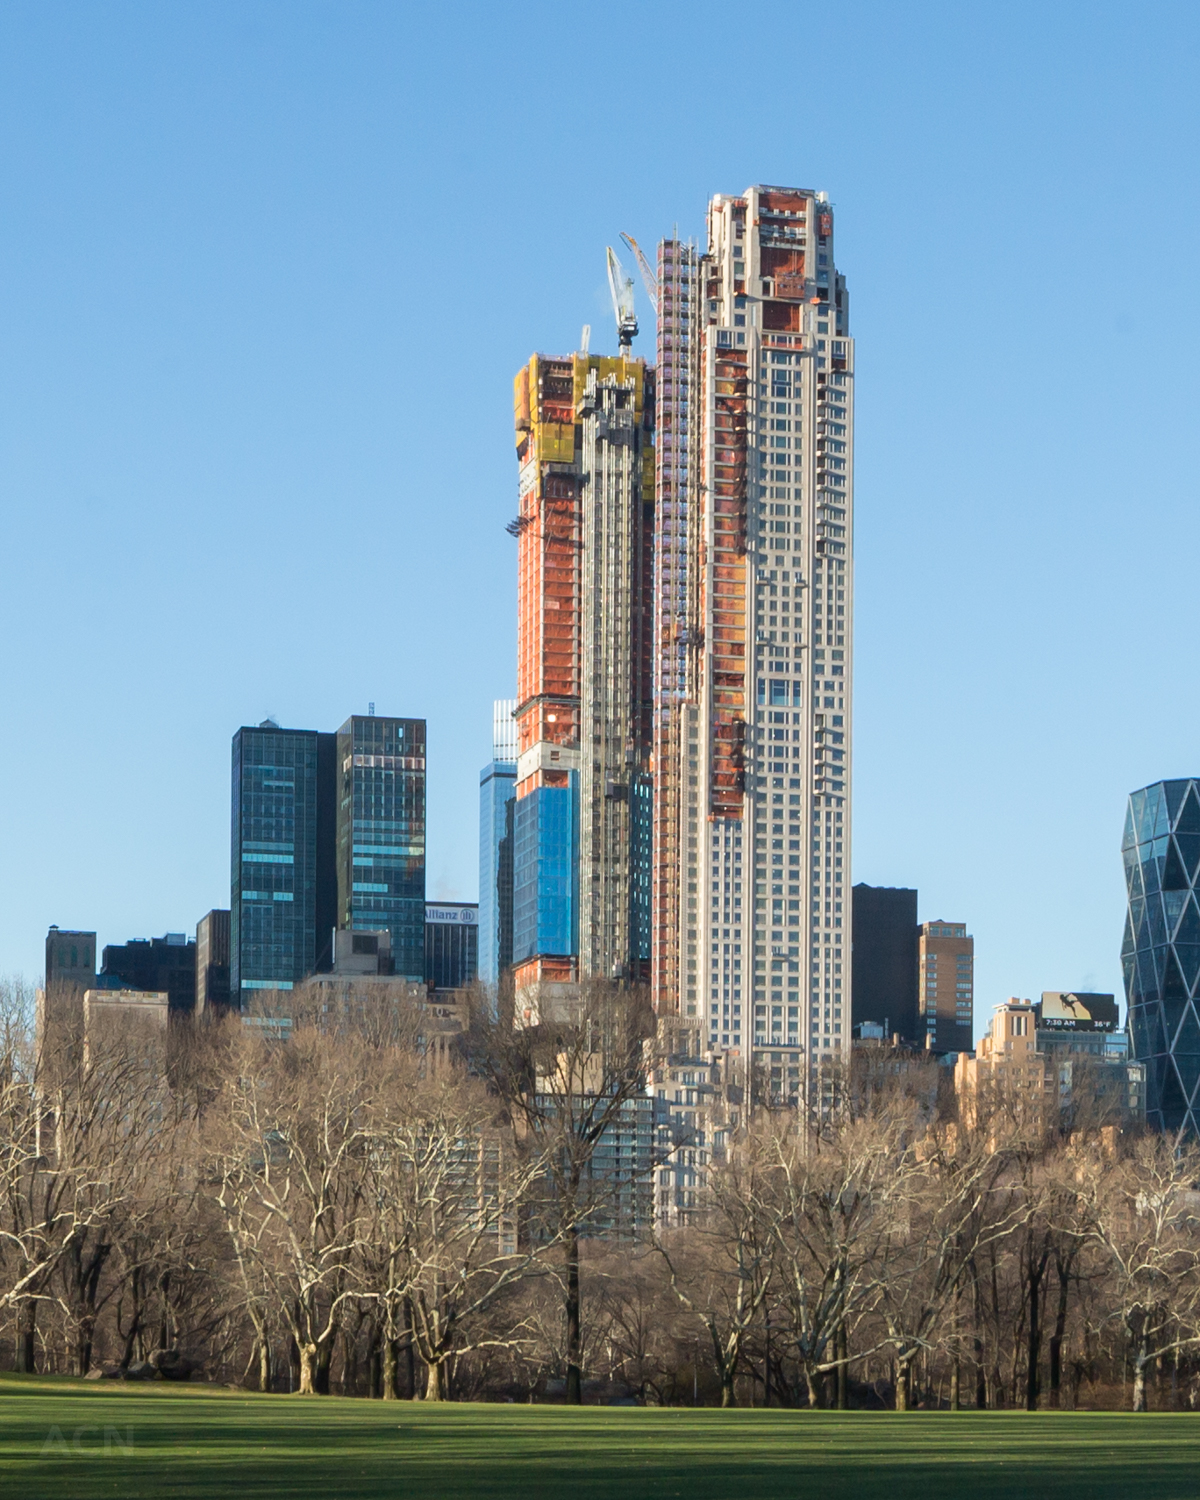 217-West-57th-Street-behind-220-Central-Park-South-by-Andrew-Campbell-Nelson.jpg